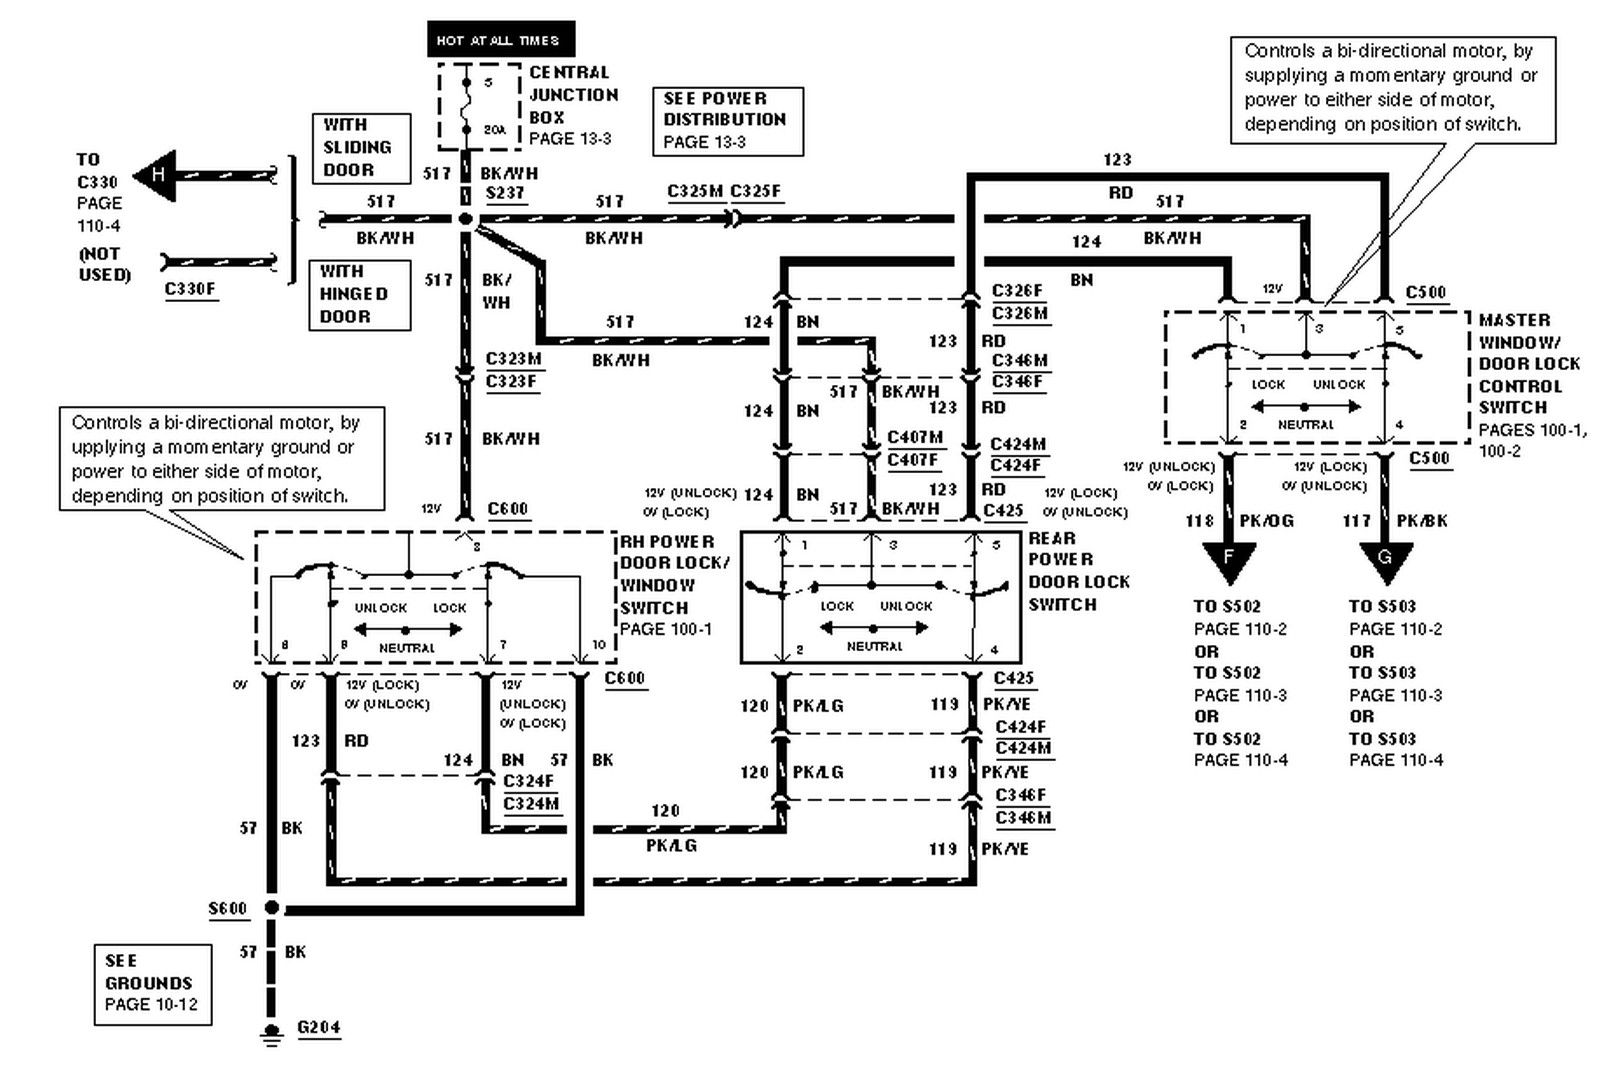 80 2010_11_05_235941_99_e_350_power_door_lock_wiring_diagram_e574233ae37af9677ff5fddb790386a28f9dd7ad ford f150 wiring diagram vehiclepad readingrat net 1997 ford truck wiring schematics at readyjetset.co